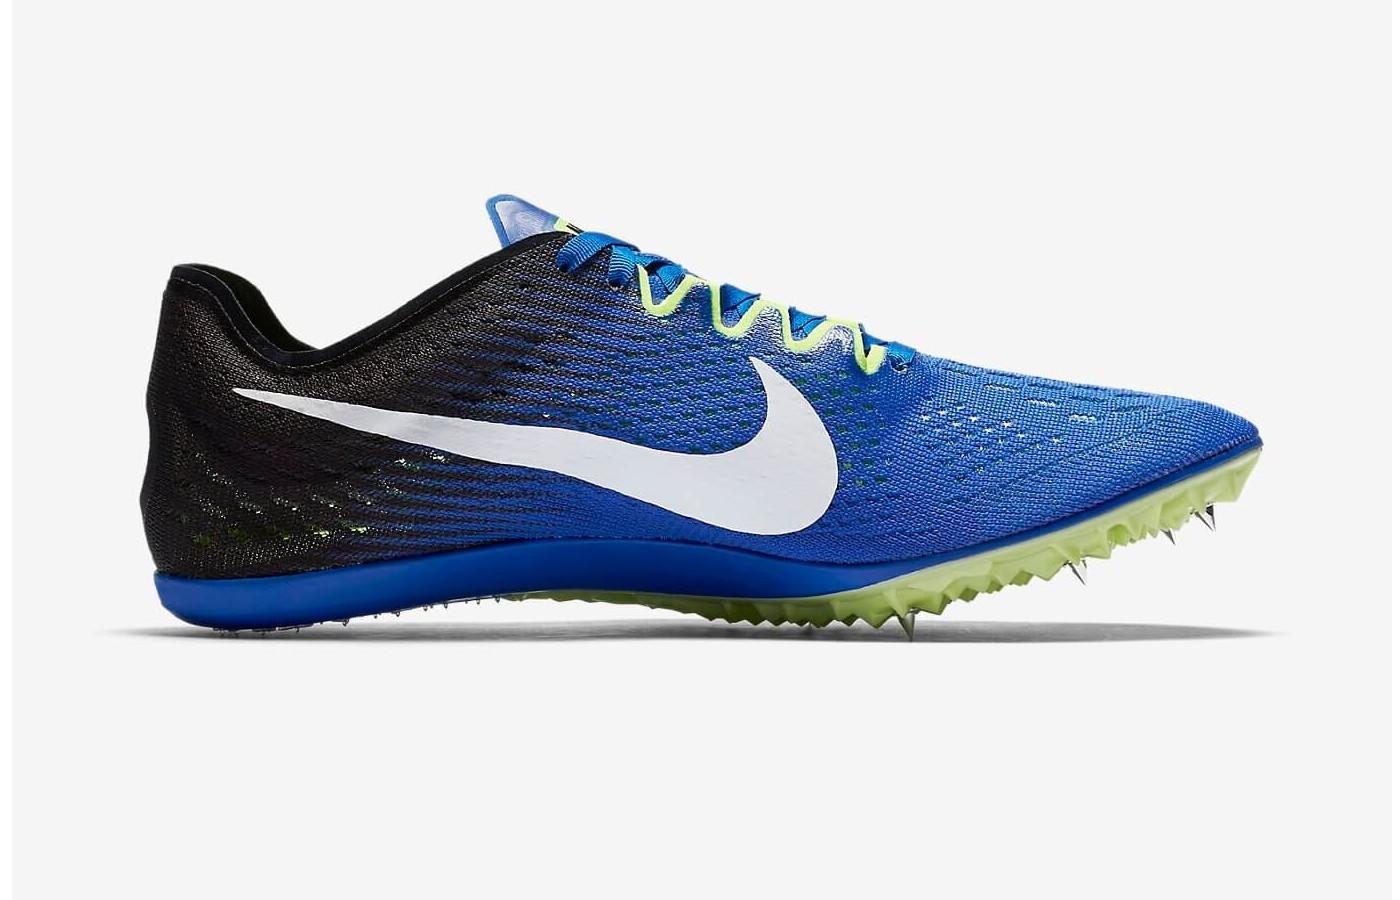 1a62272df569 The Zoom Victory 3 showcases Nike s trademark impeccable style. Six track  spikes are embedded in the forefoot and arch of this running shoe.